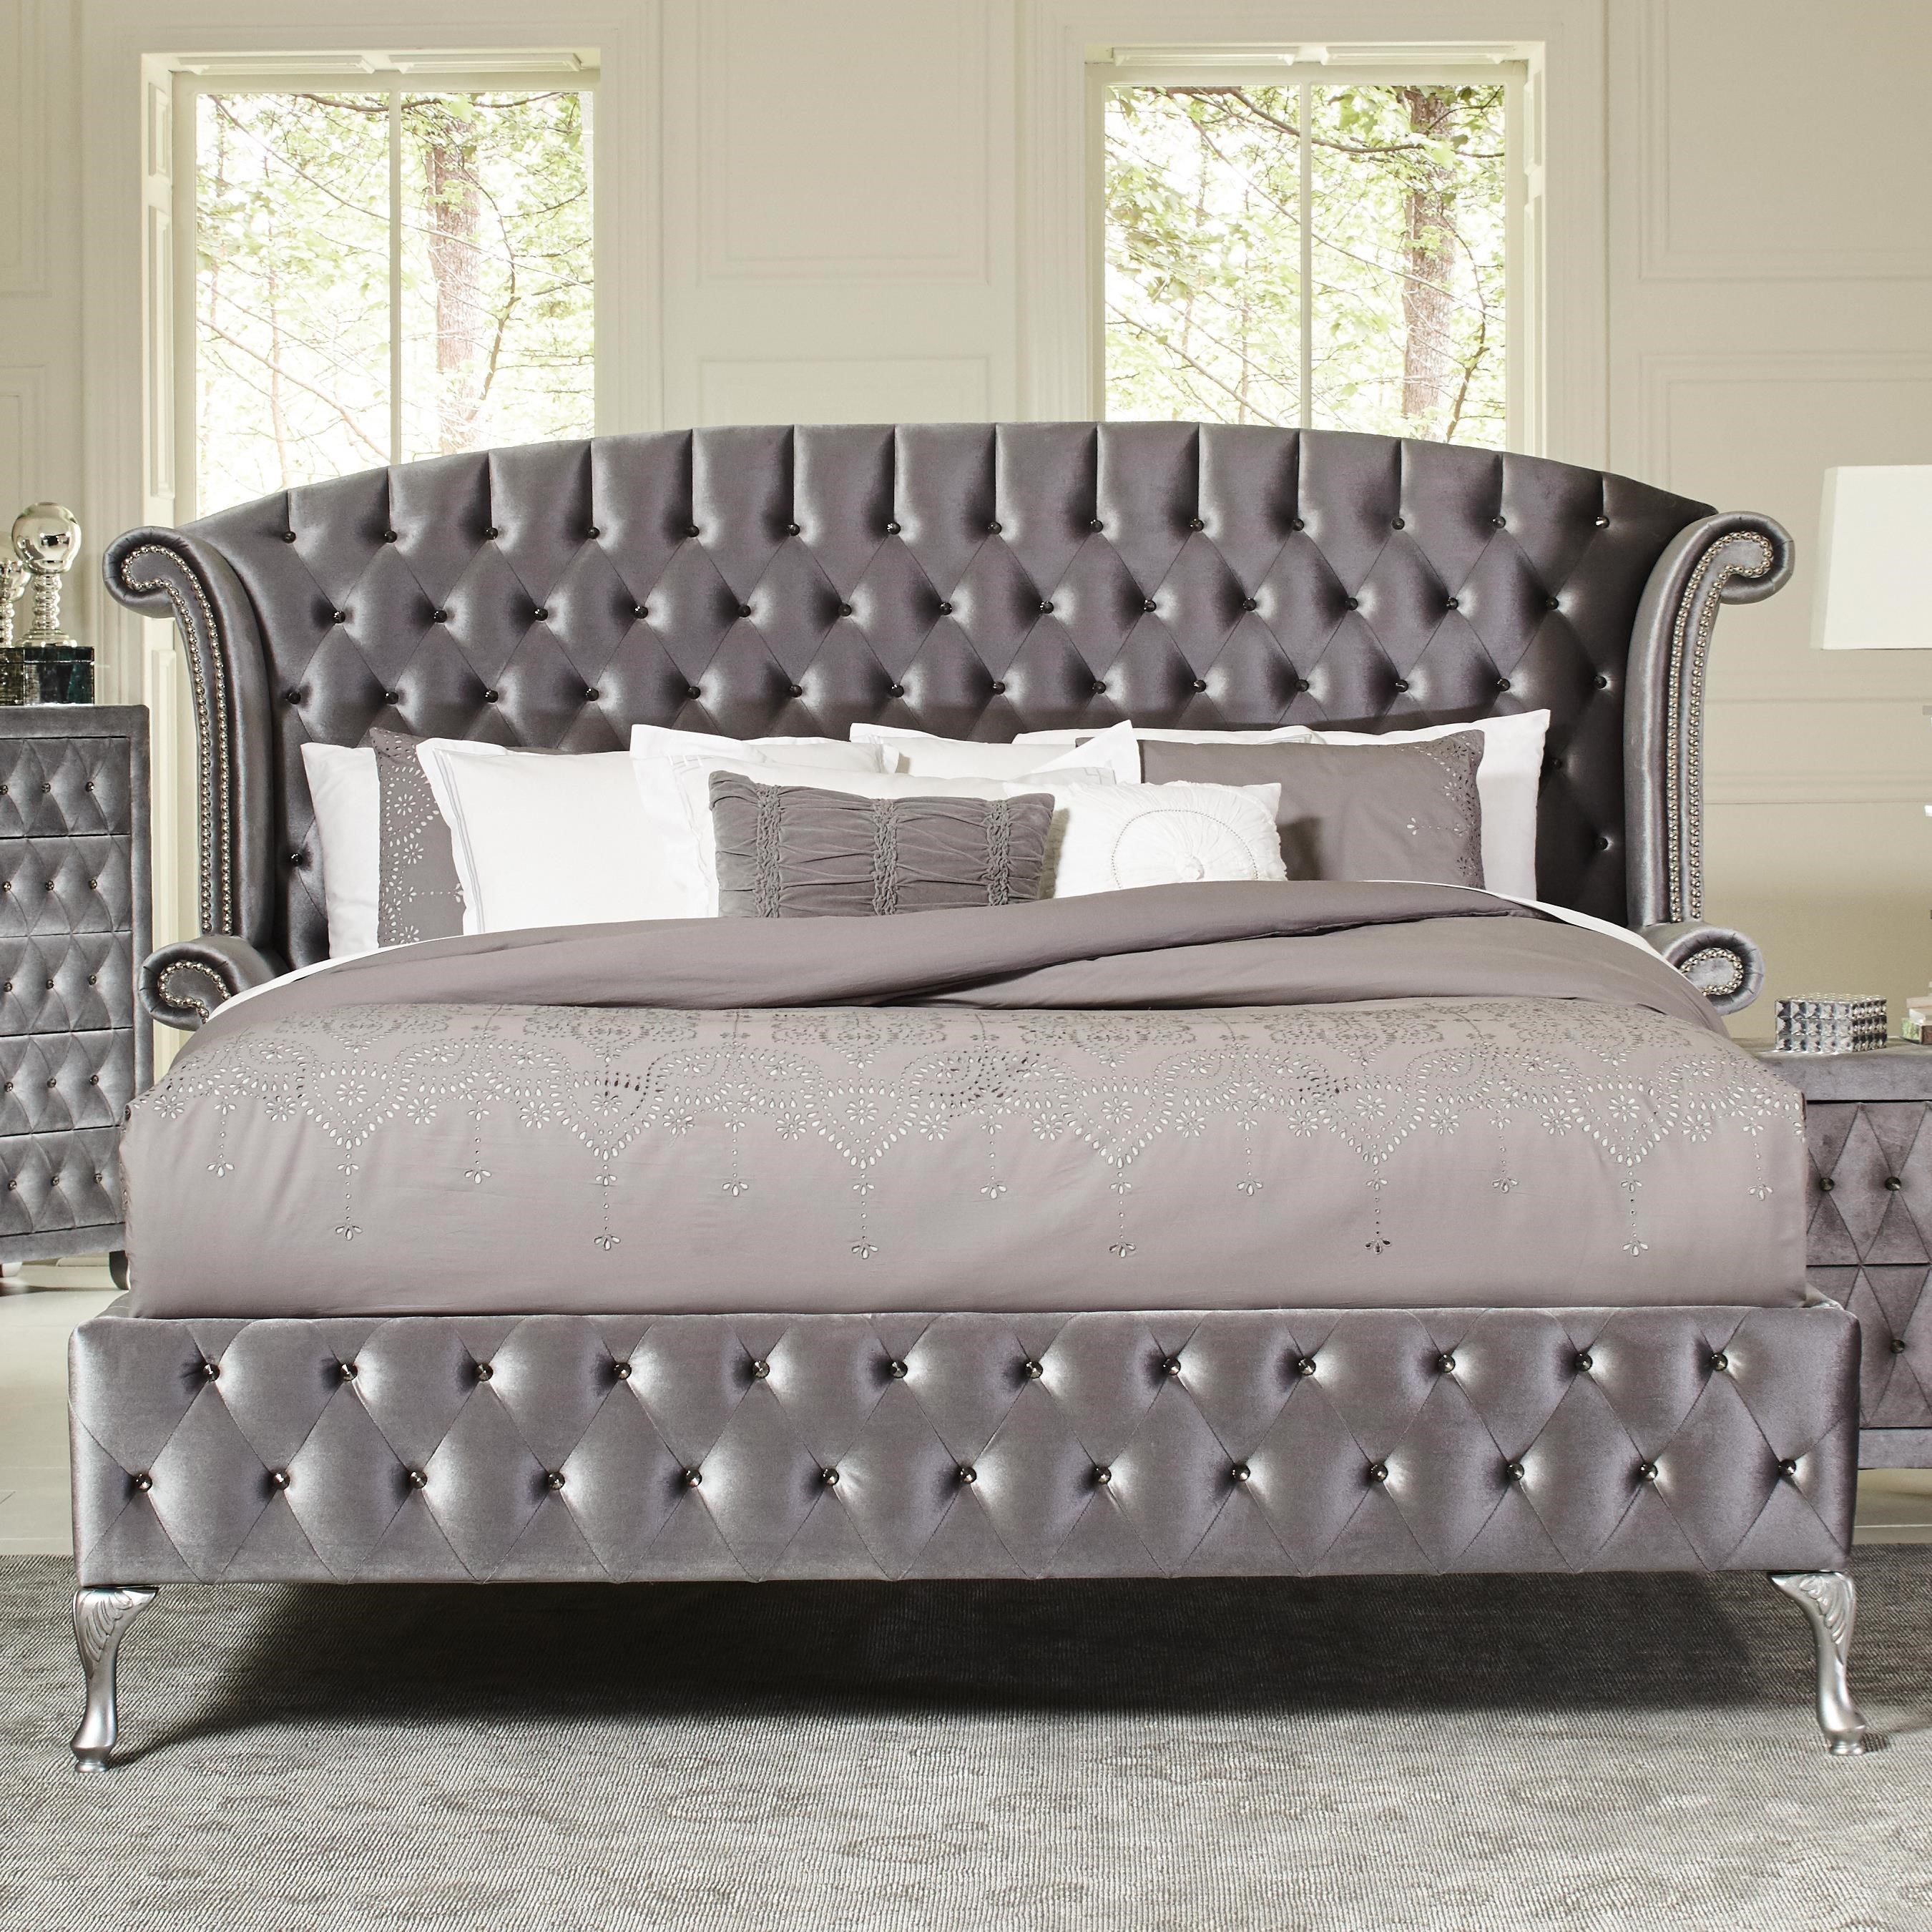 Deanna Queen Bed by Coaster at Northeast Factory Direct